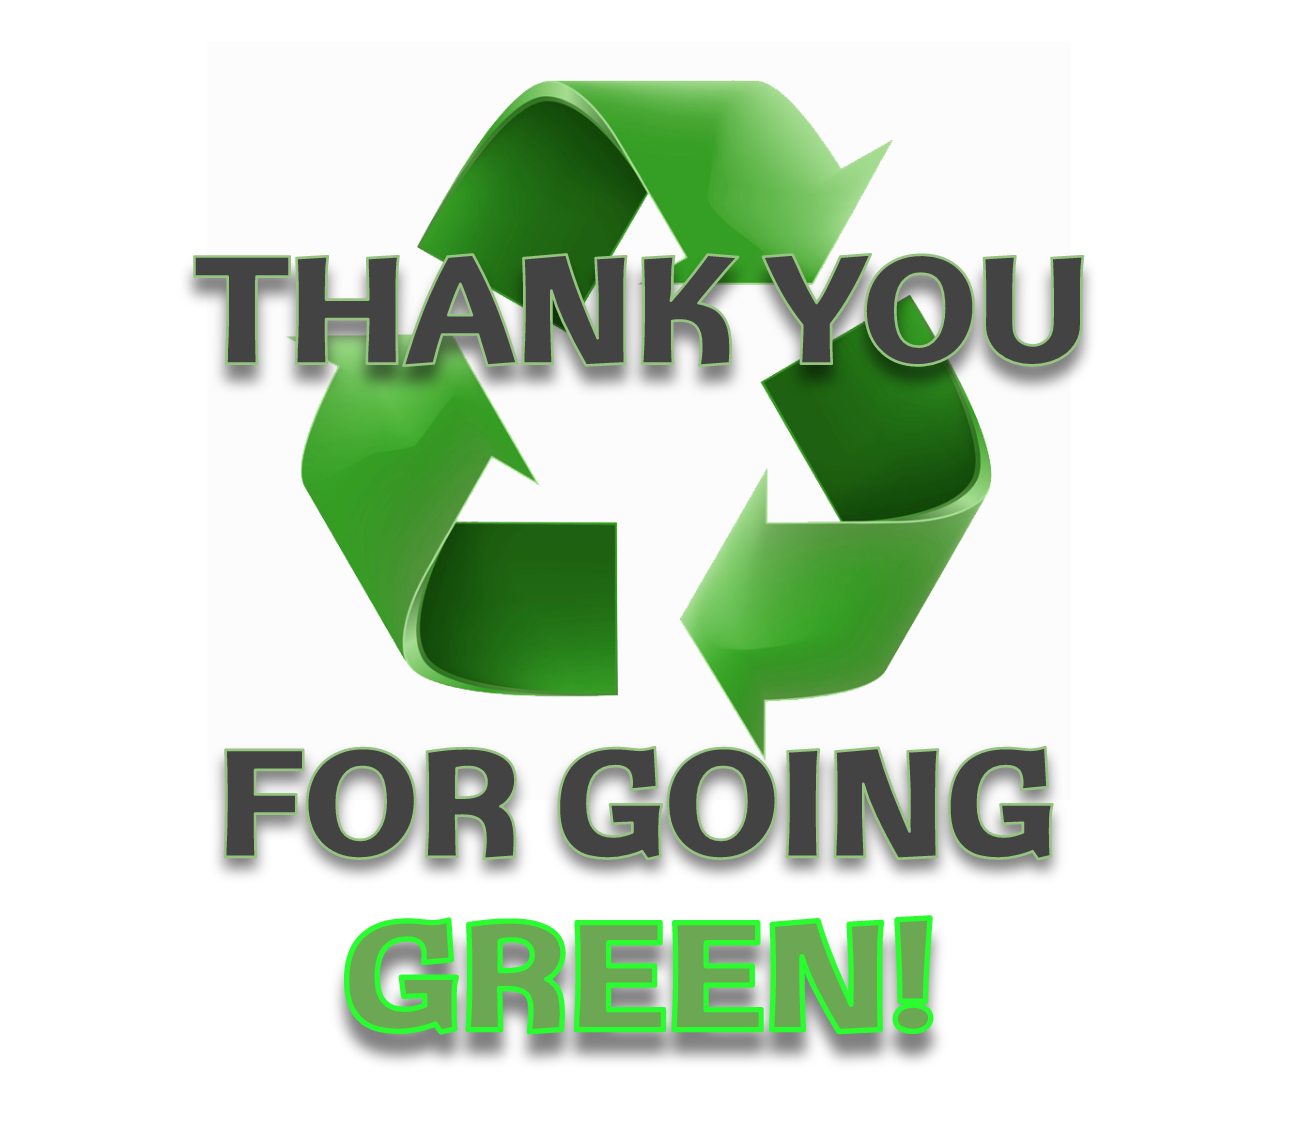 Recycle icon with message 'Thank you for going green!'